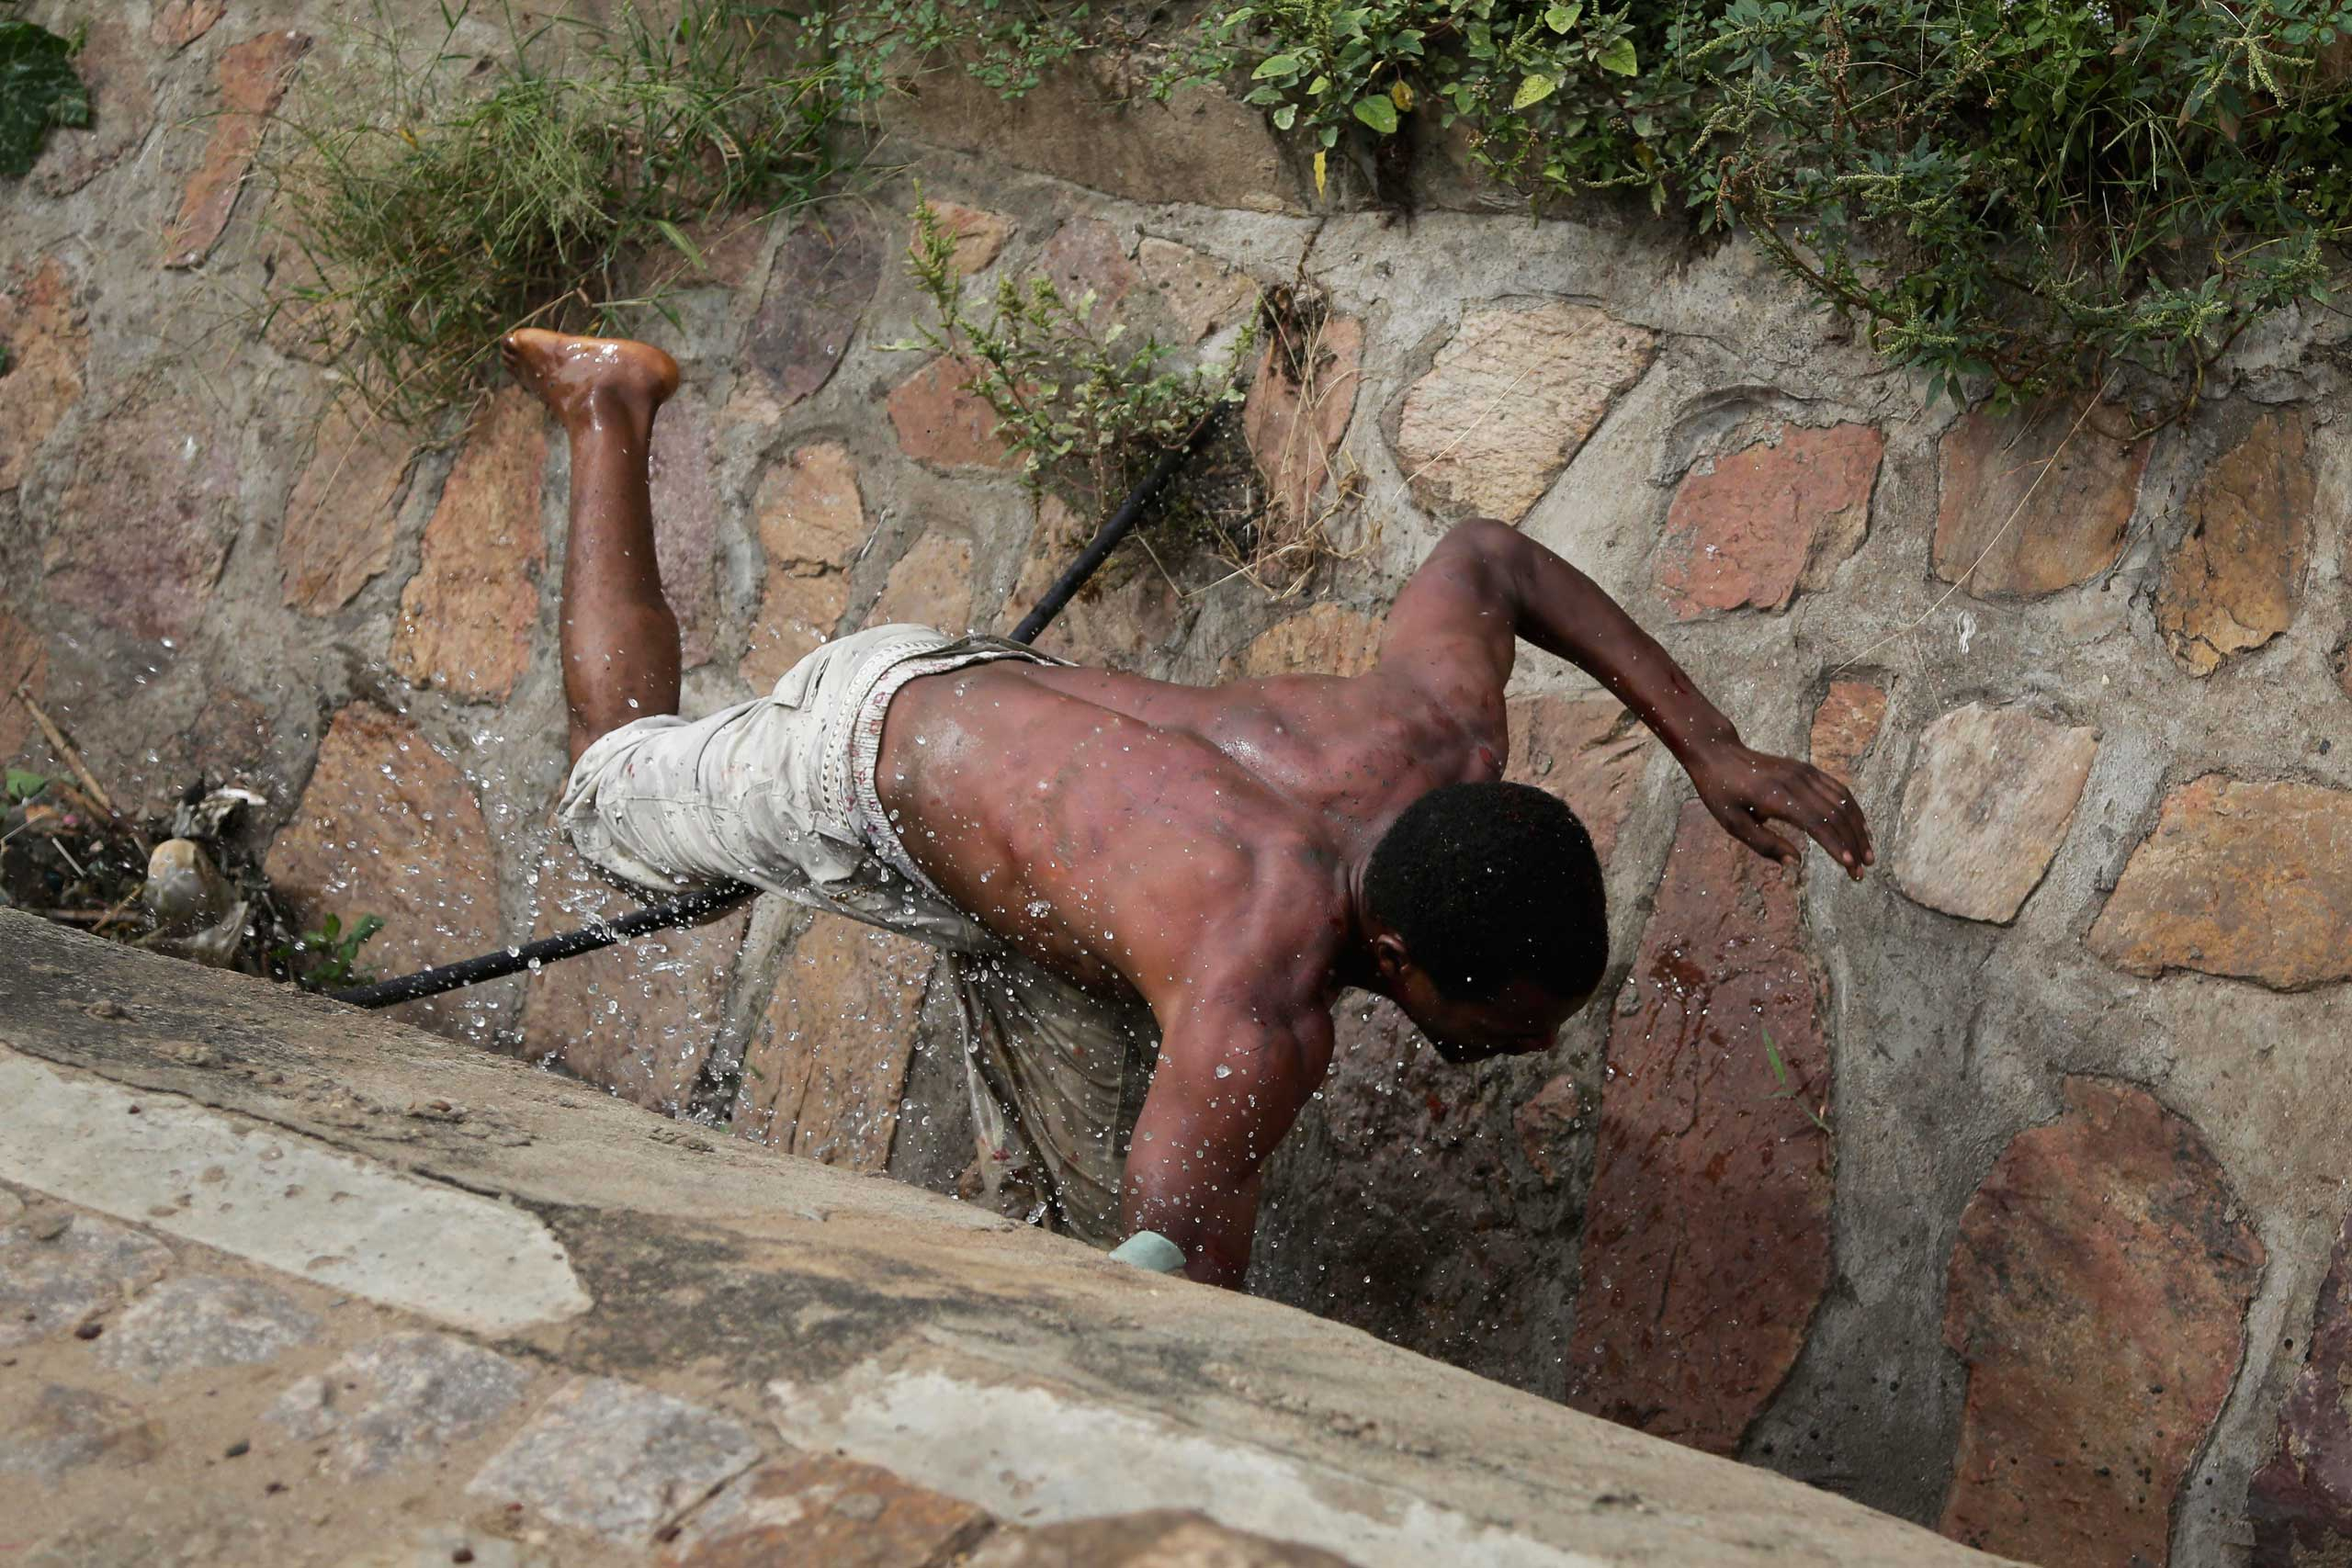 Niyonzima falls in the sewer as he flees from his house under a hail of stones thrown by a mob.